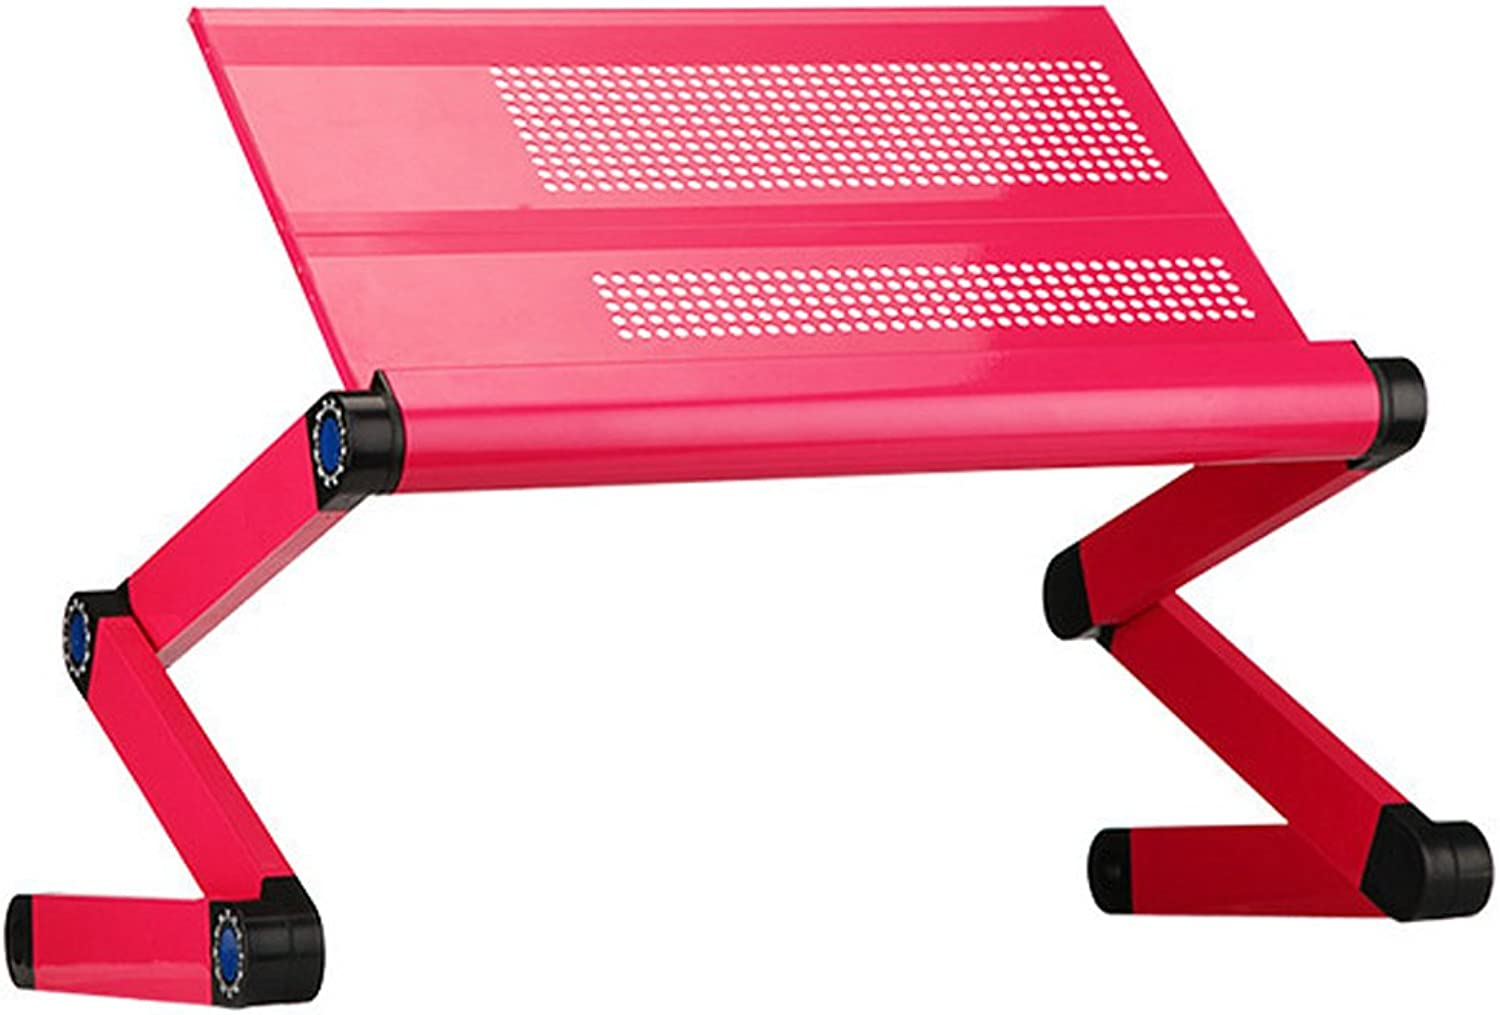 Portable Laptop Desk Adjustable Foldable Computer Stand for Home Office (Without Mouse Pad),Pink,48X24cm